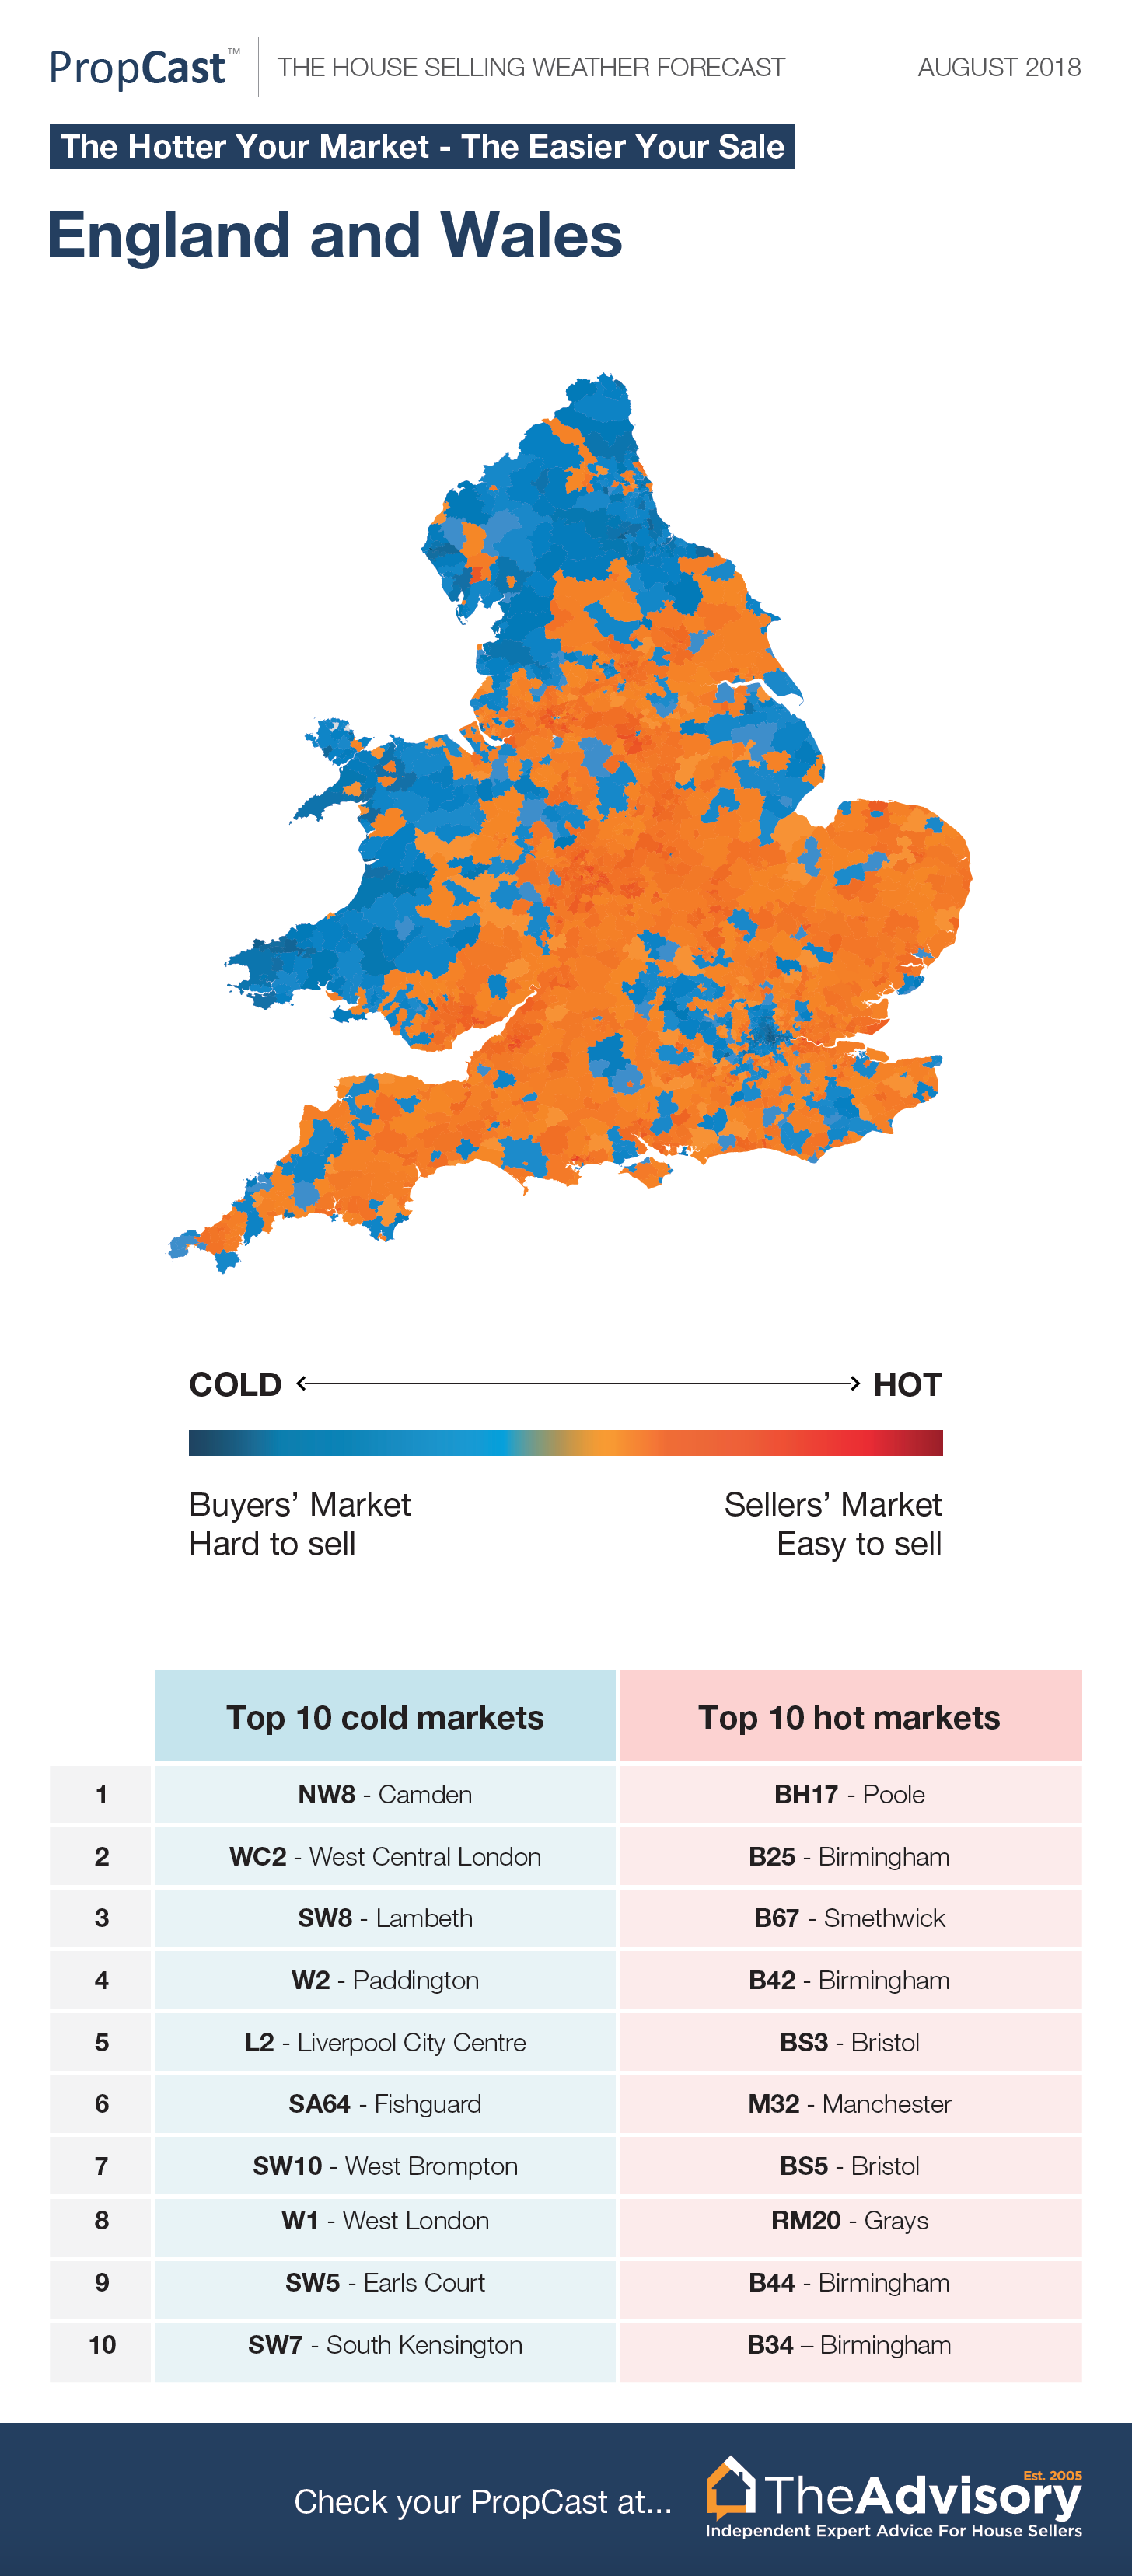 MAPPED: Best & Worst Places To Sell A Home In England & Wales (Aug 2018)